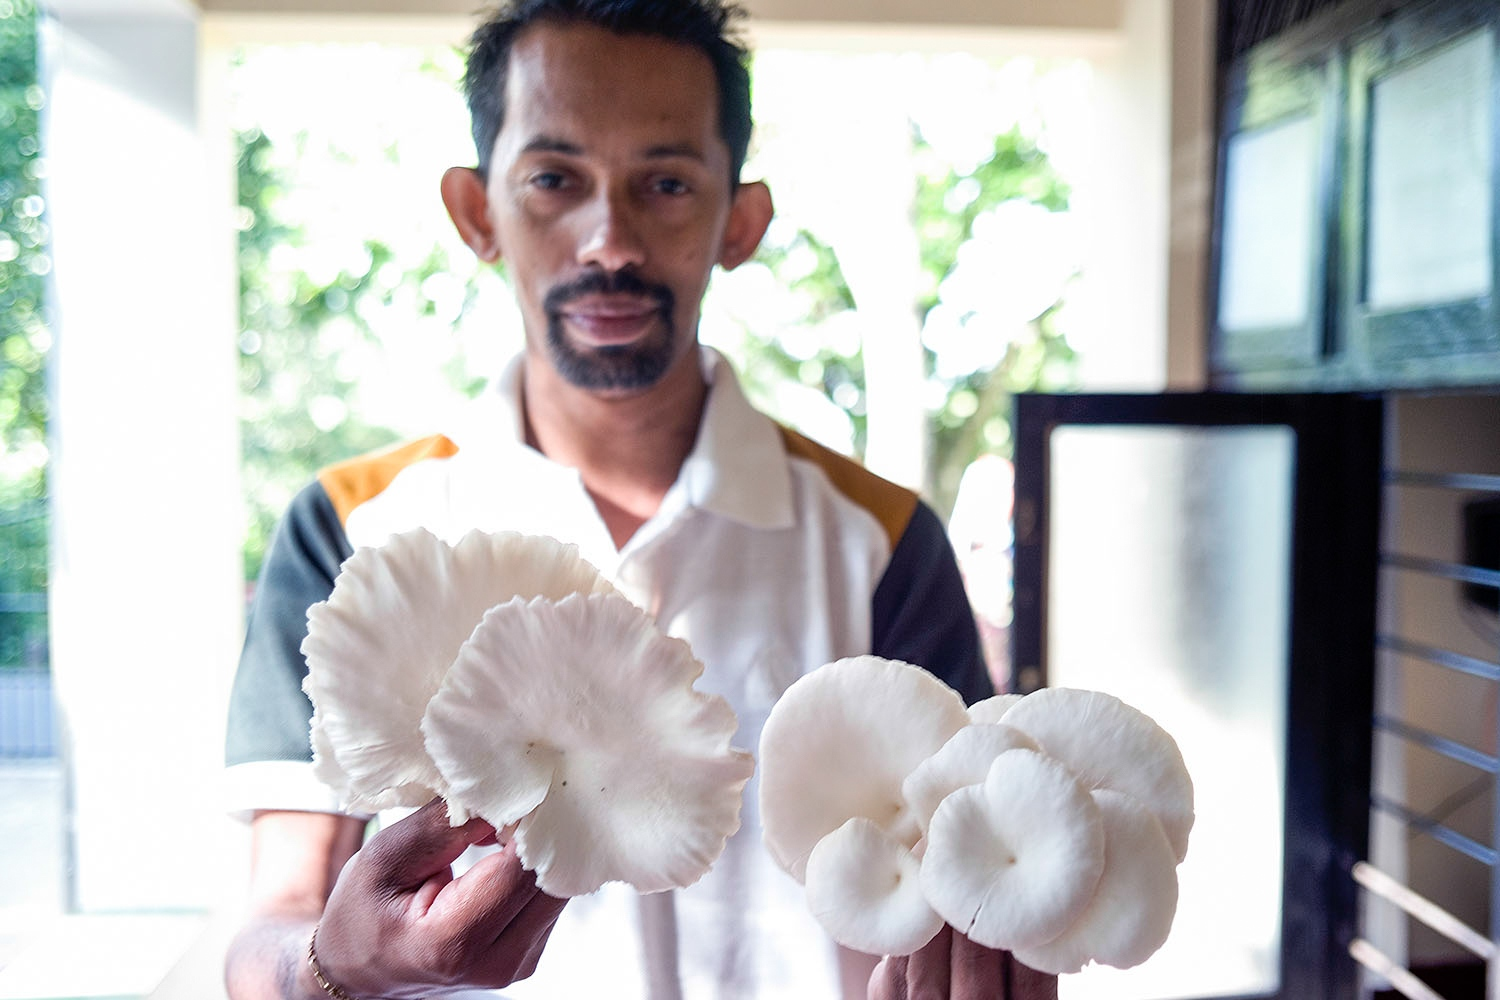 The general manager of a community centre holds mushrooms that are grown in the garden shed, named The Mushroom Project. The charity run centre provides support to isolated communities by giving them the training to grow their own food.